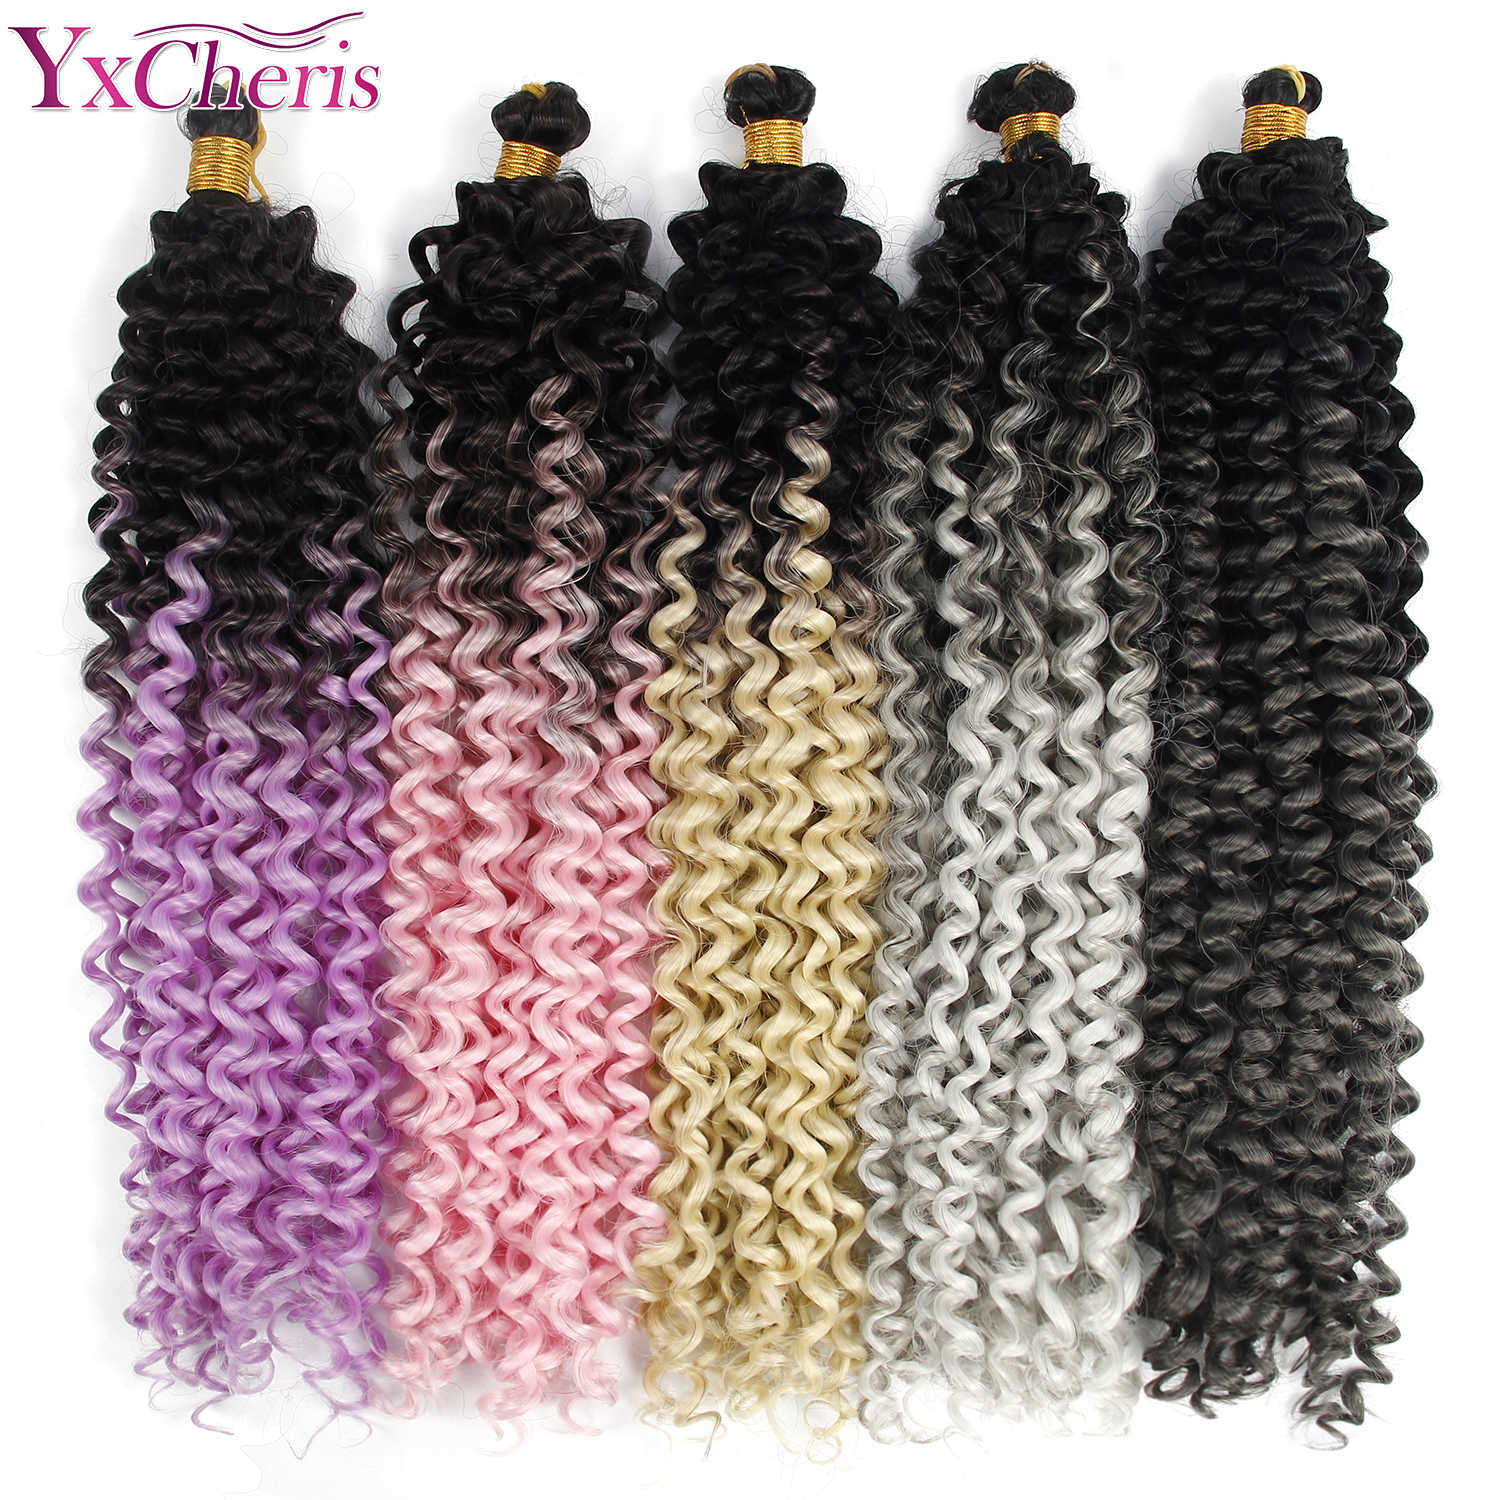 Synthetic Ombre Braiding Hair Extensions Water Wave Crochet Hair Blonde Pink Grey Hair Bundles